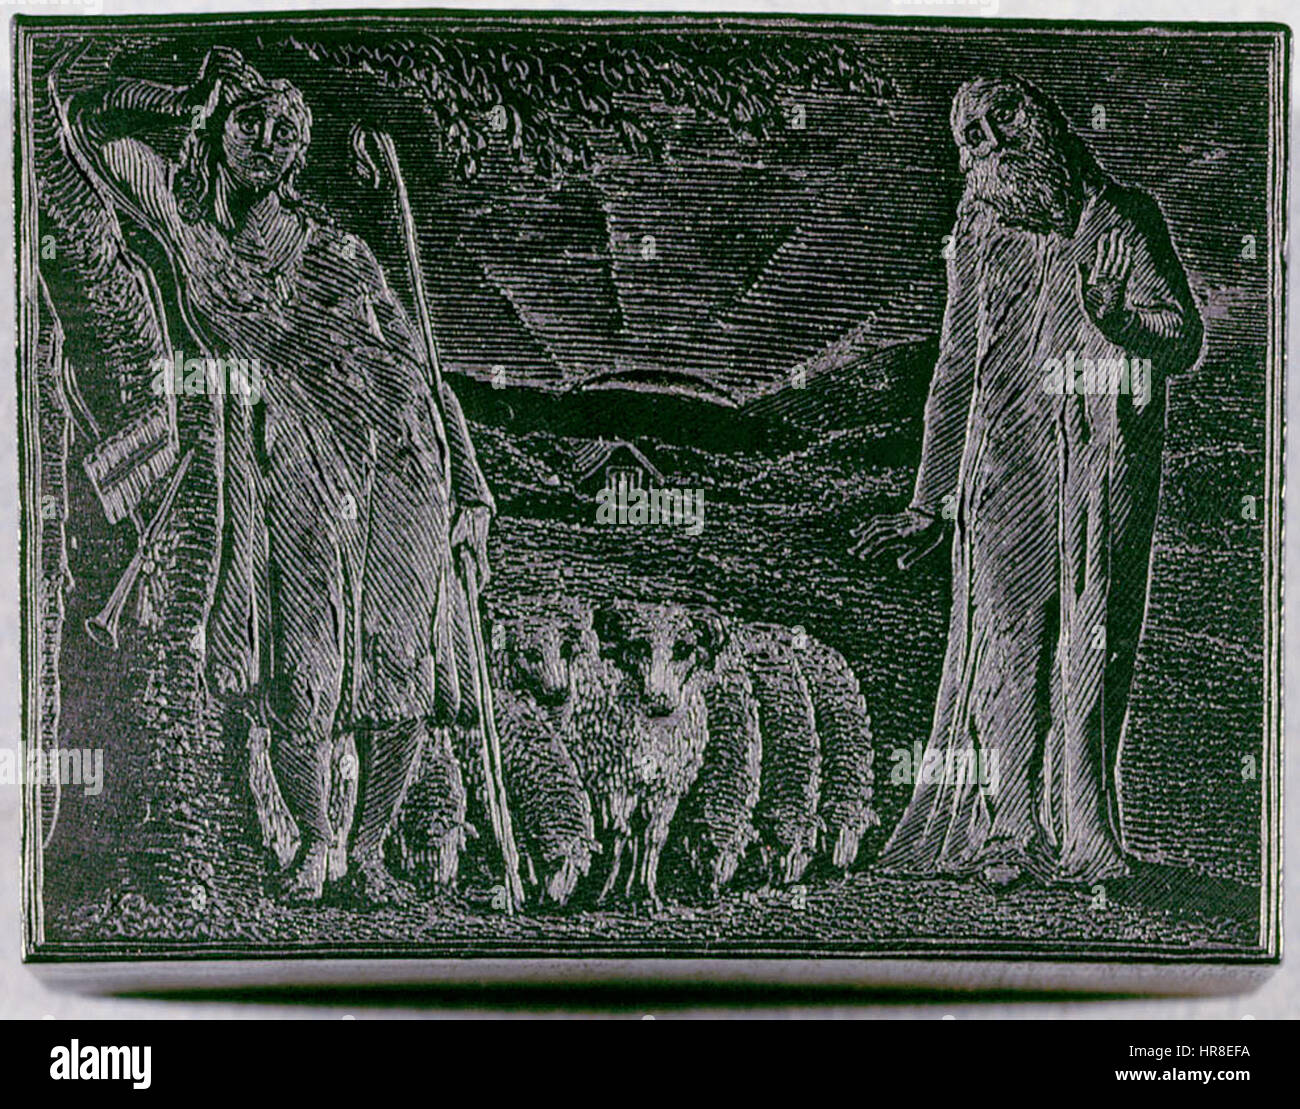 The Pastorals of Virgil, related materials, object 5 woodblock bb504 bm-woodengraving 5 300 - Stock Image